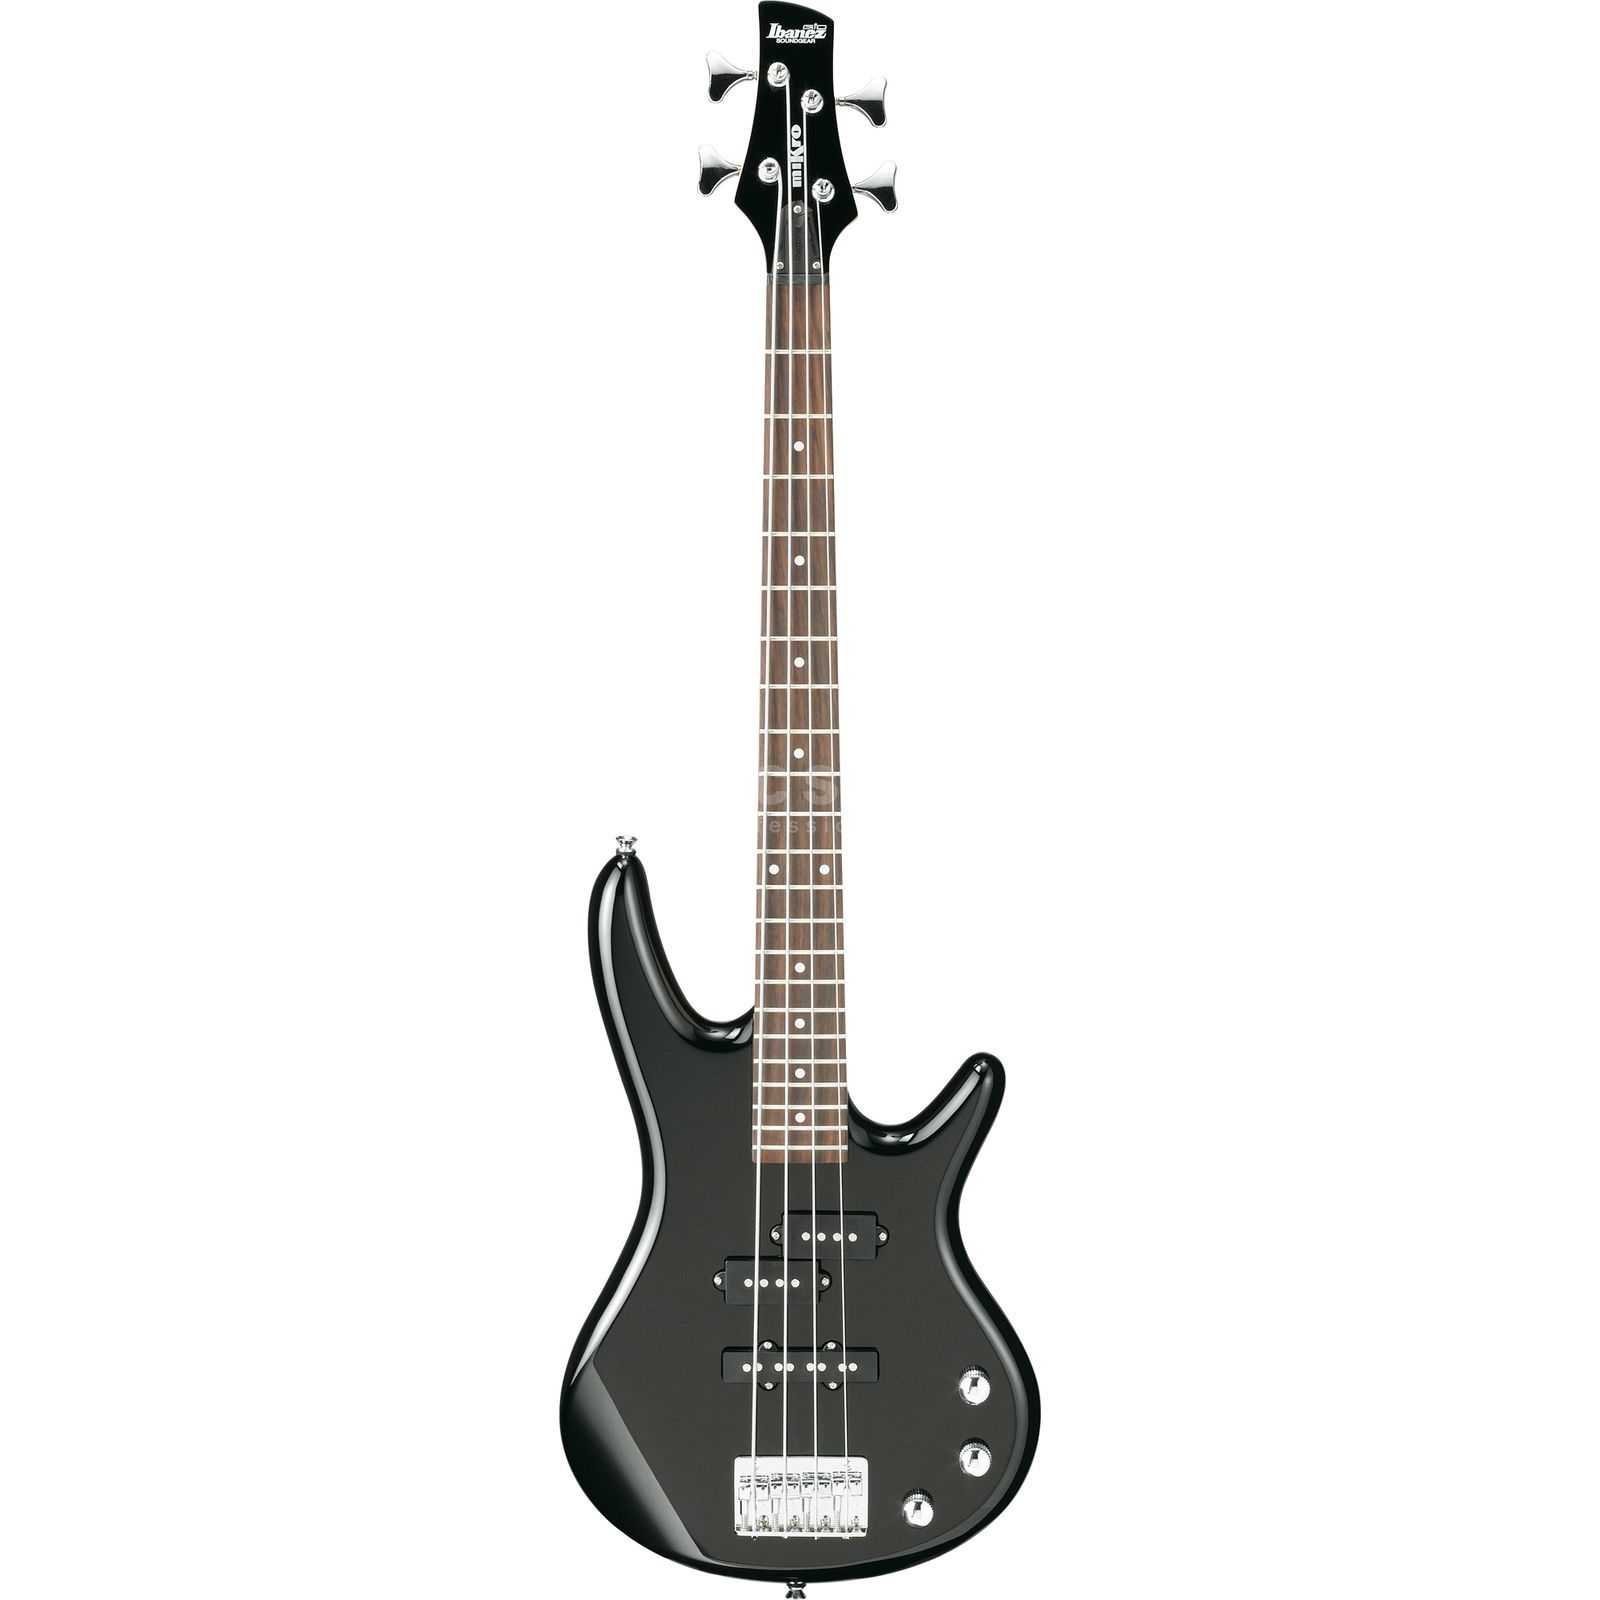 Ibanez GSRM20 Mini Bass Guitar, Black    Изображение товара